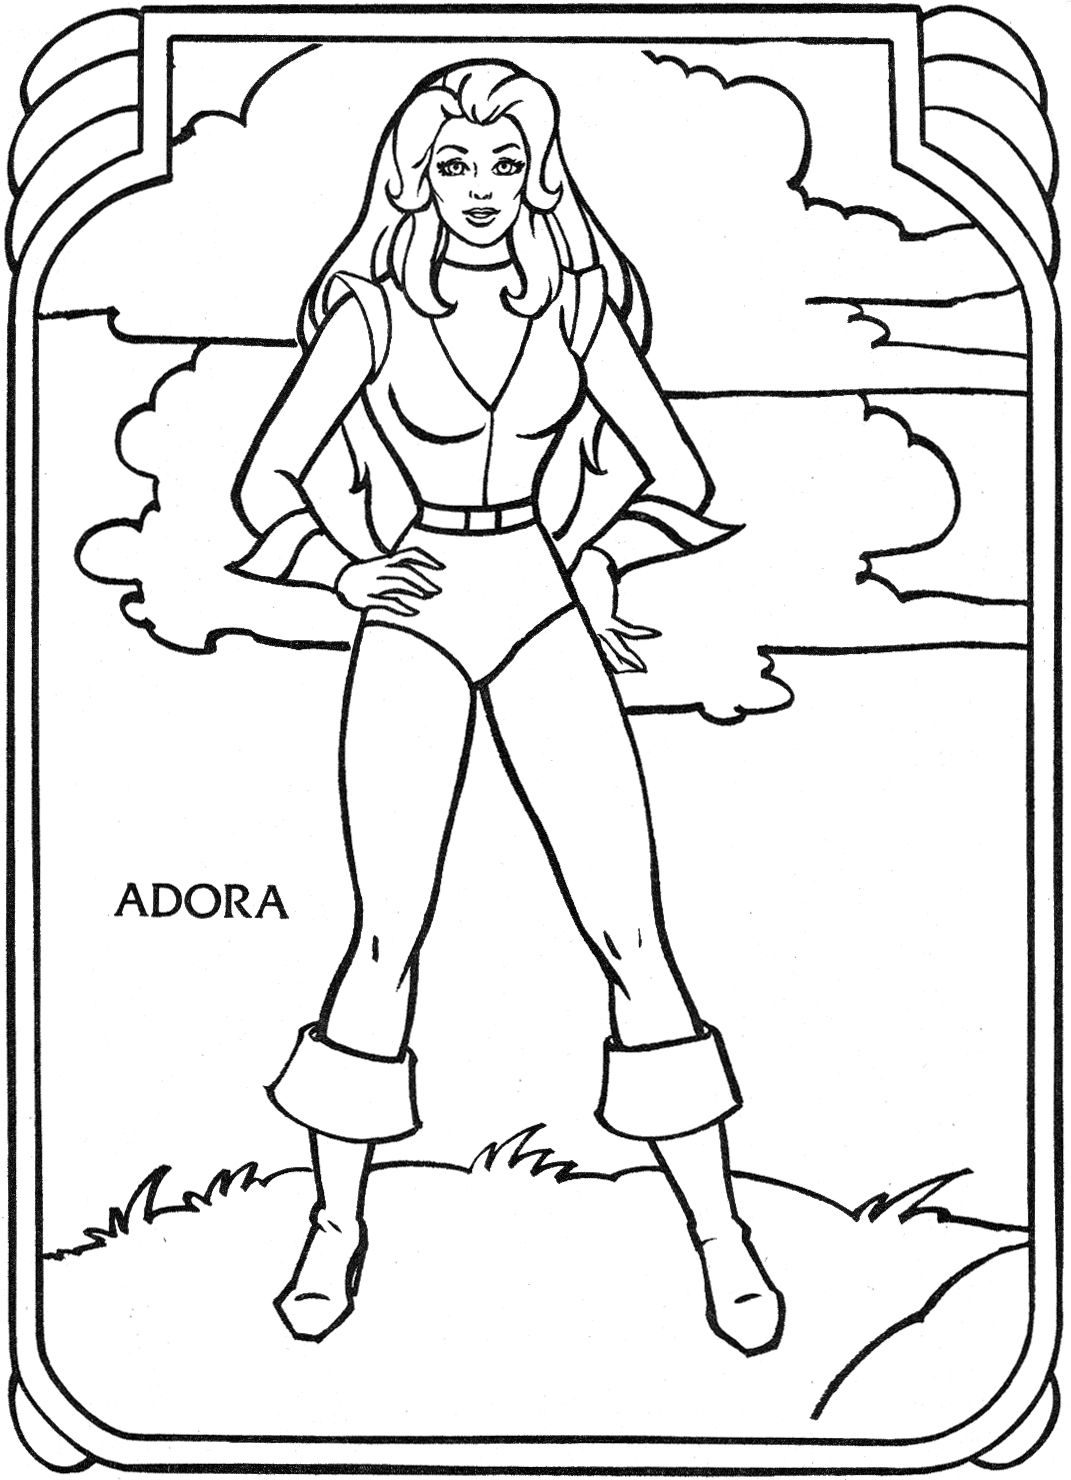 ra coloring book pages - photo#24